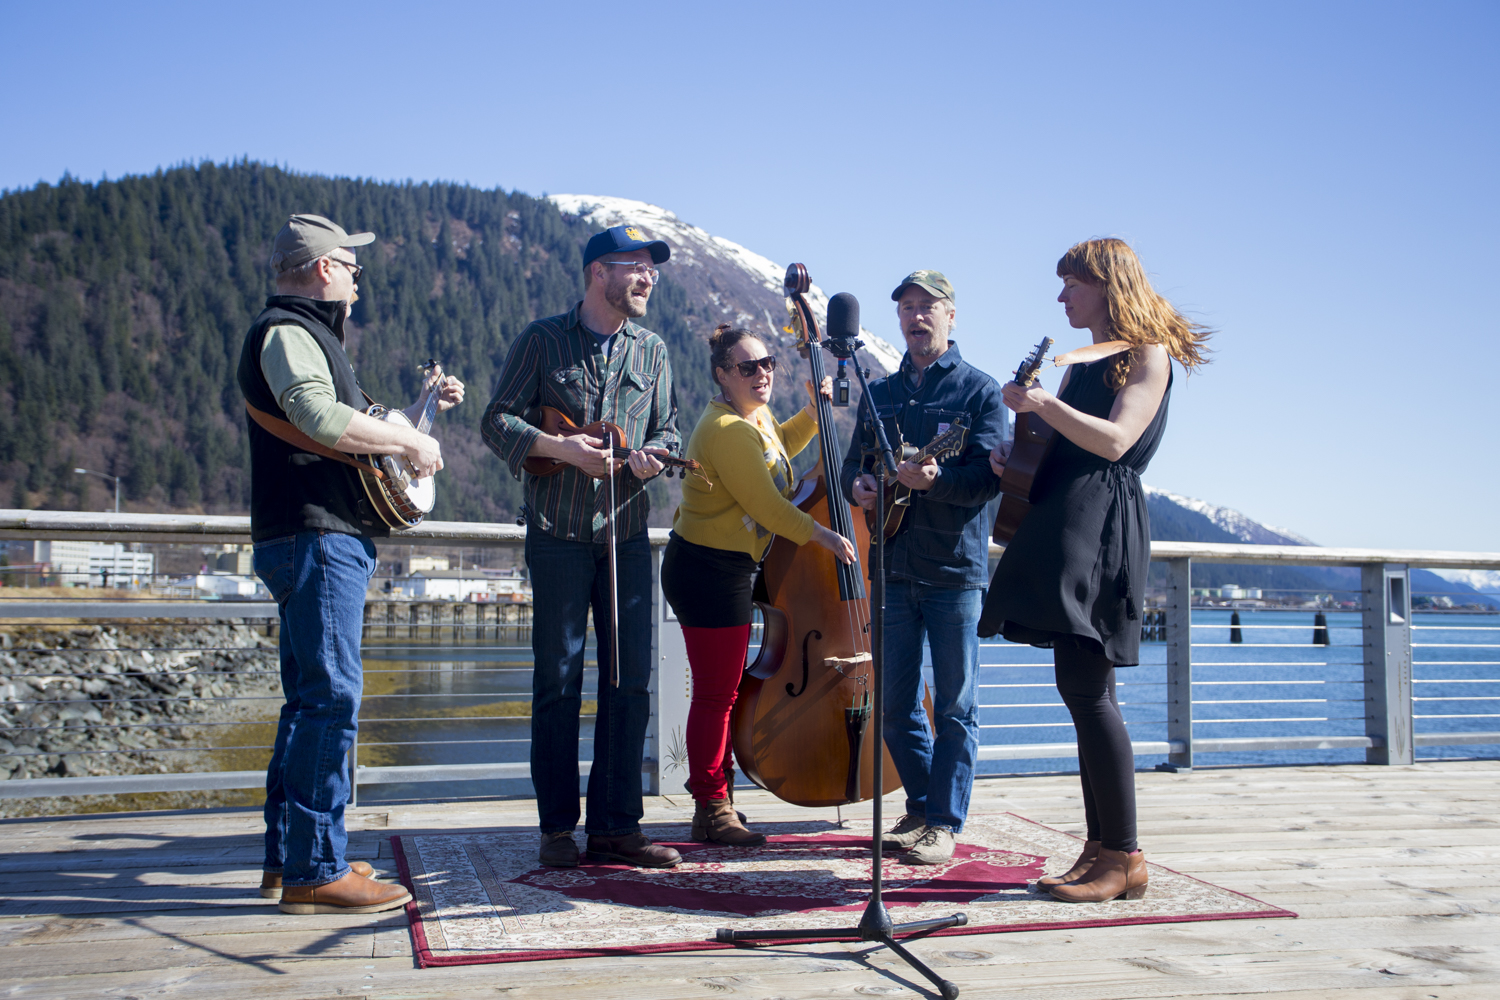 Video: Red Carpet Concert with Foghorn Stringband